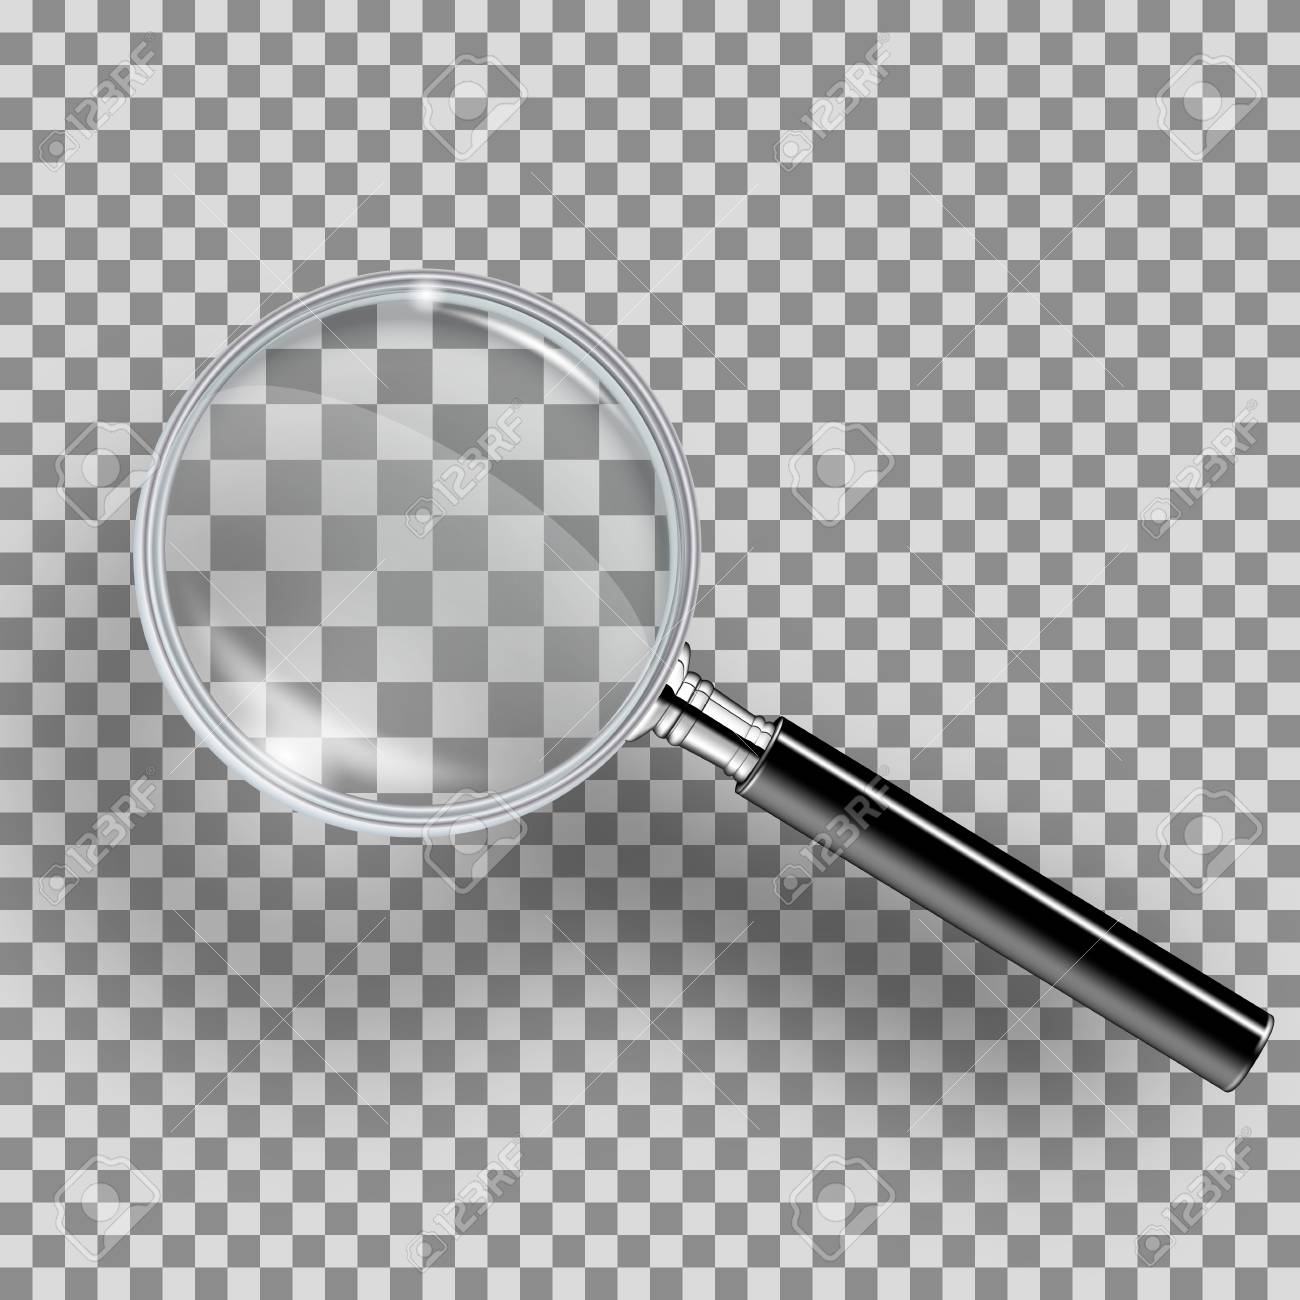 Realistic loupe with black handle, highlights, shadow  Magnifying